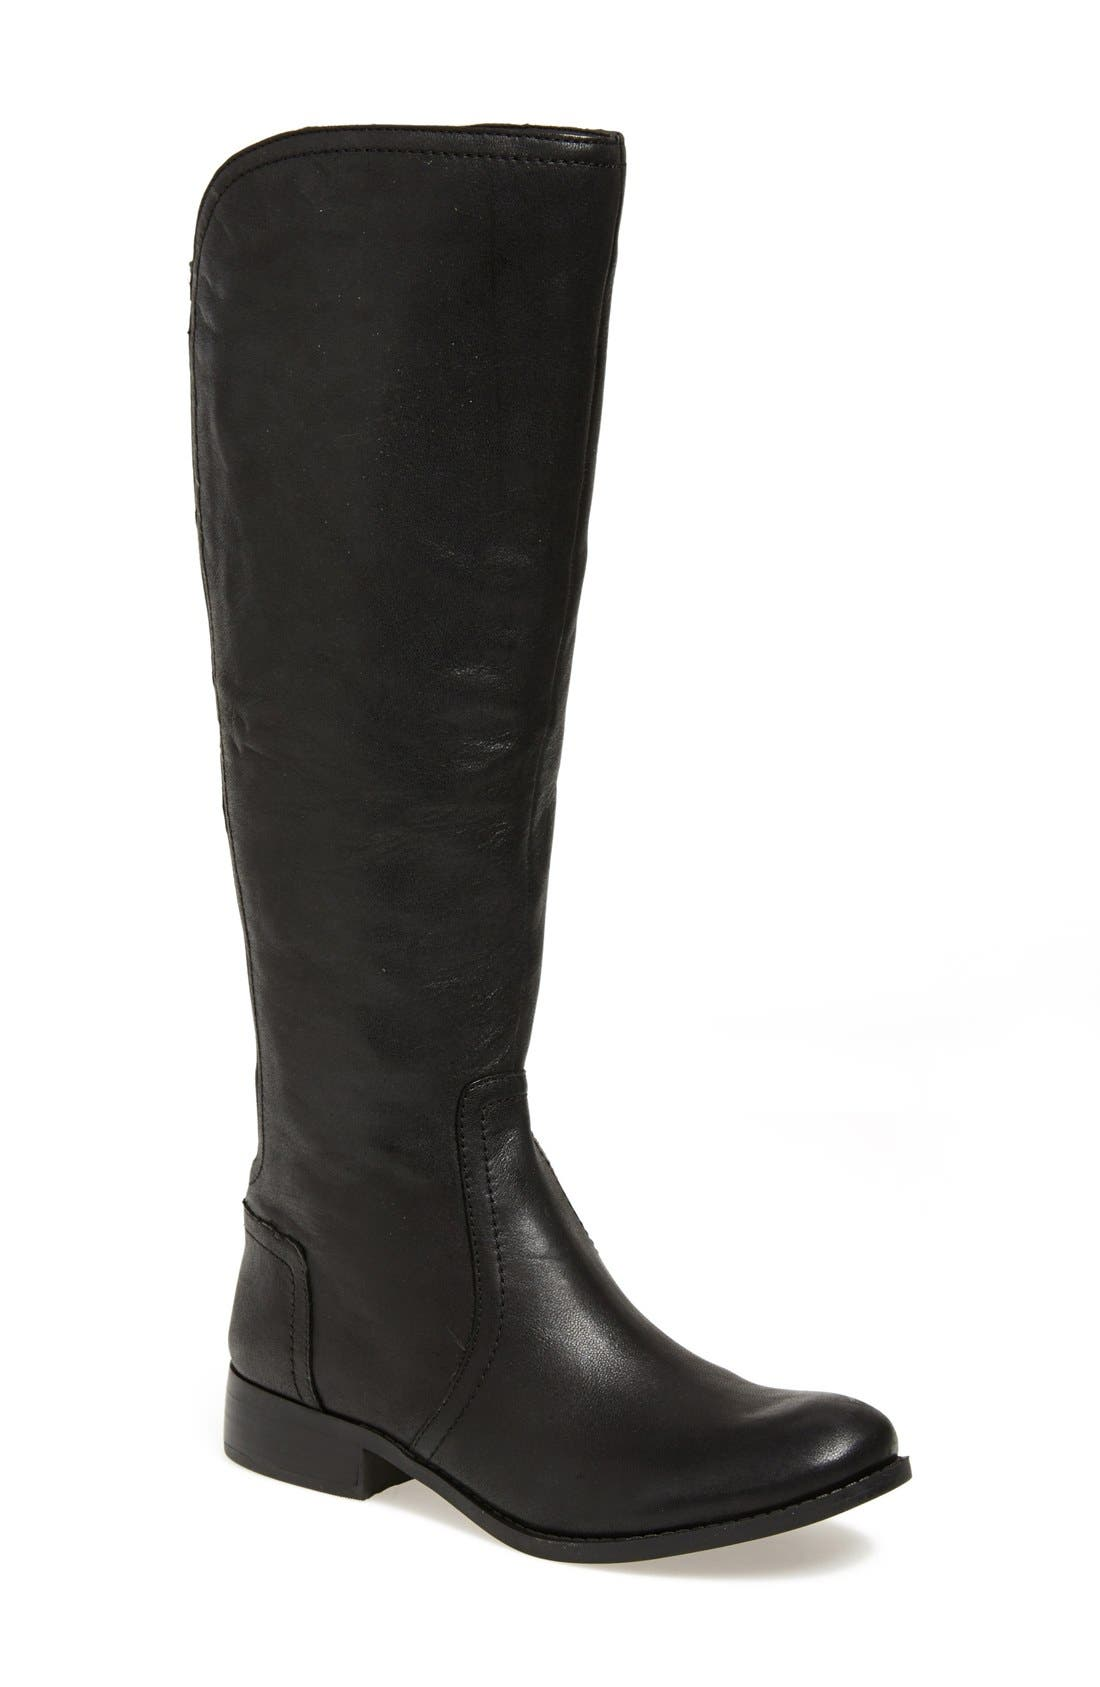 'Randee' Tall Boot, Main, color, 001